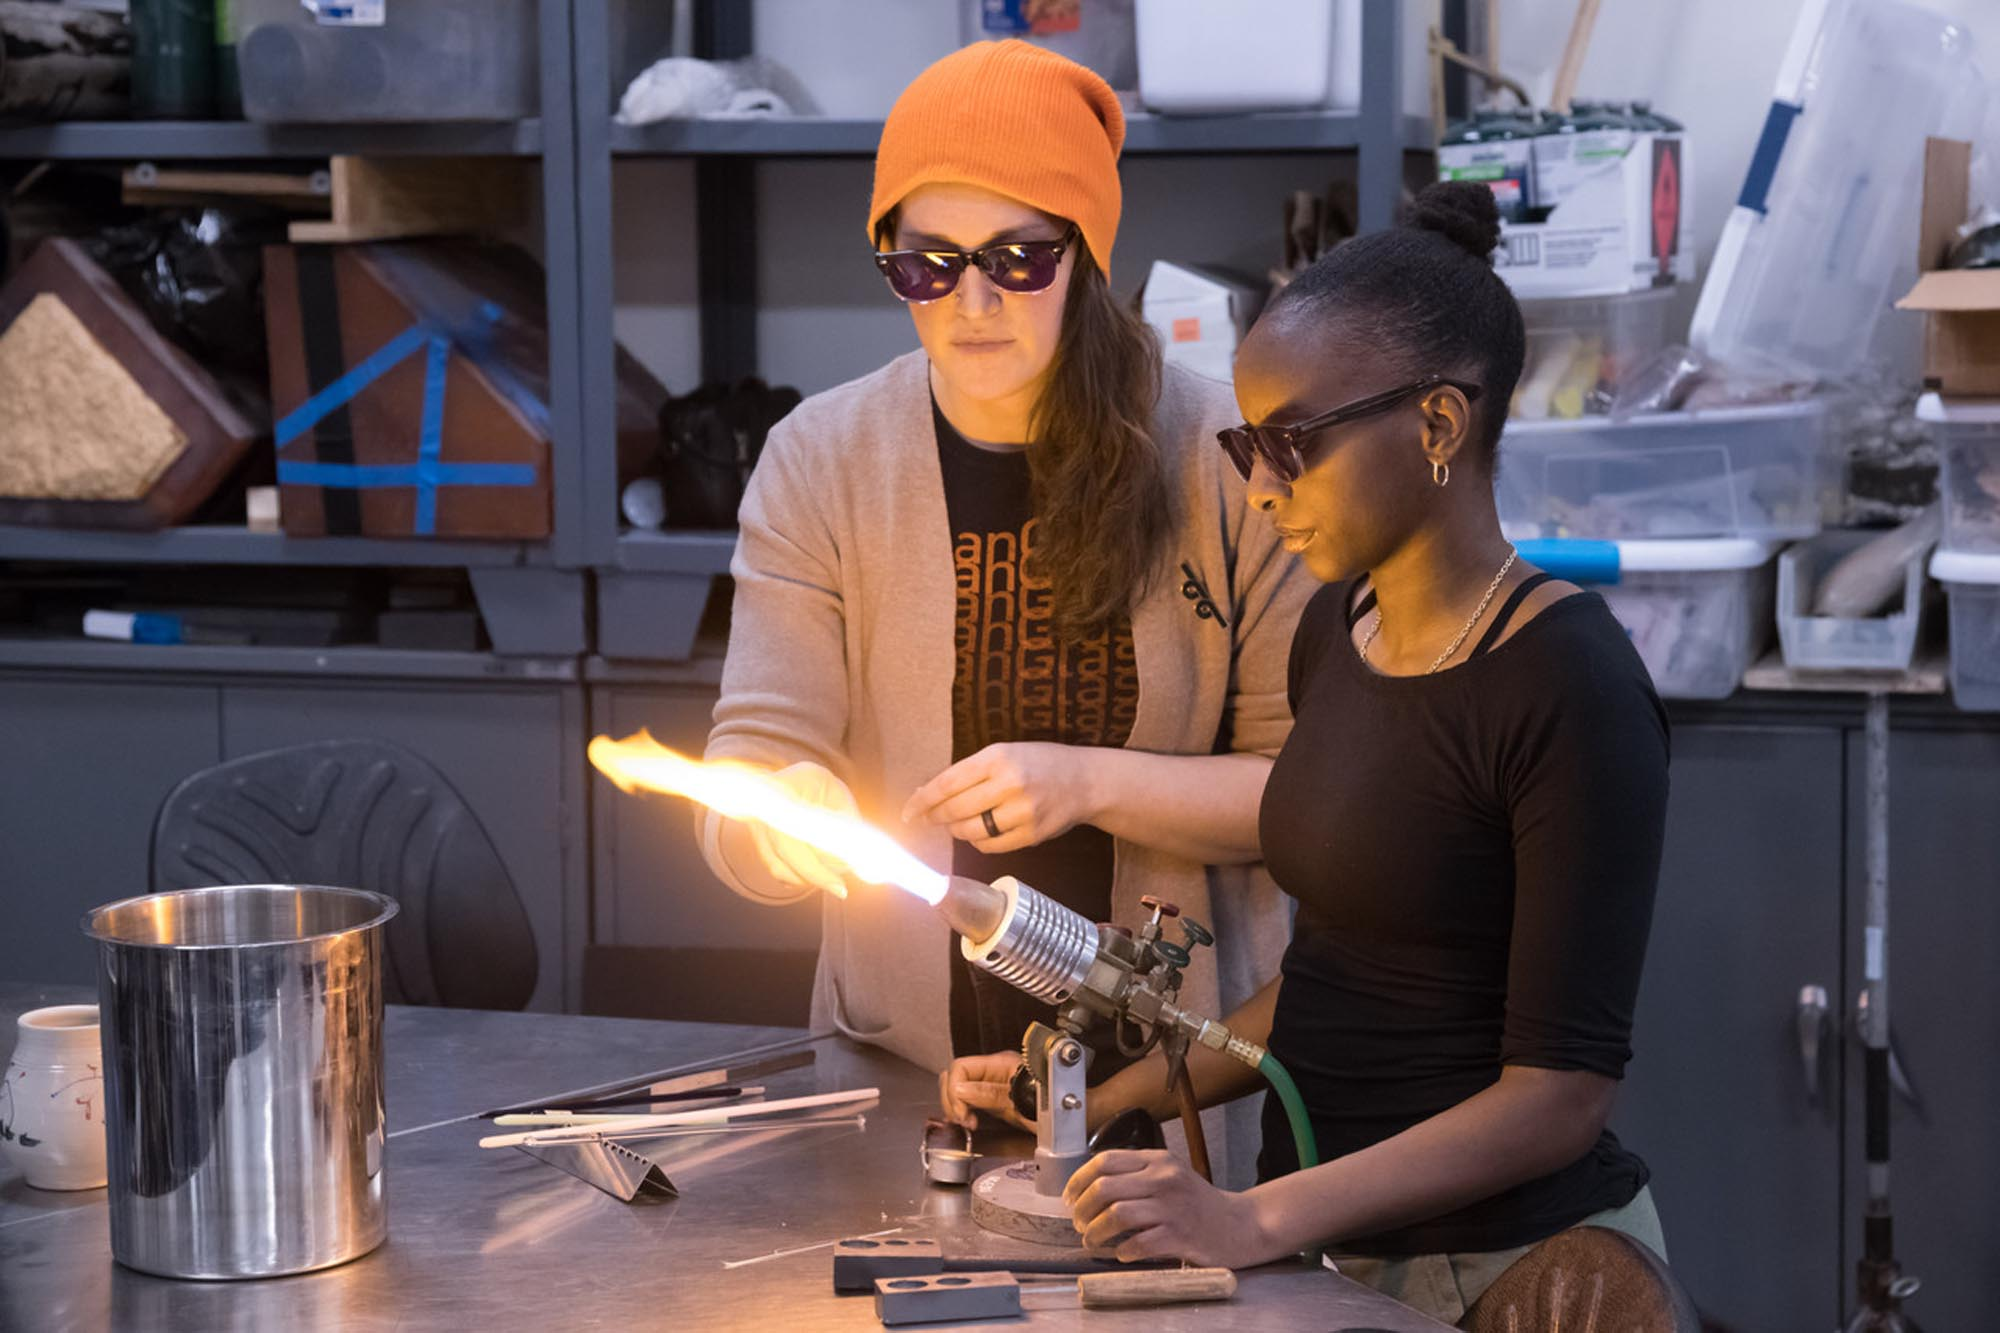 two people working on glass with a torch, wearing goggles